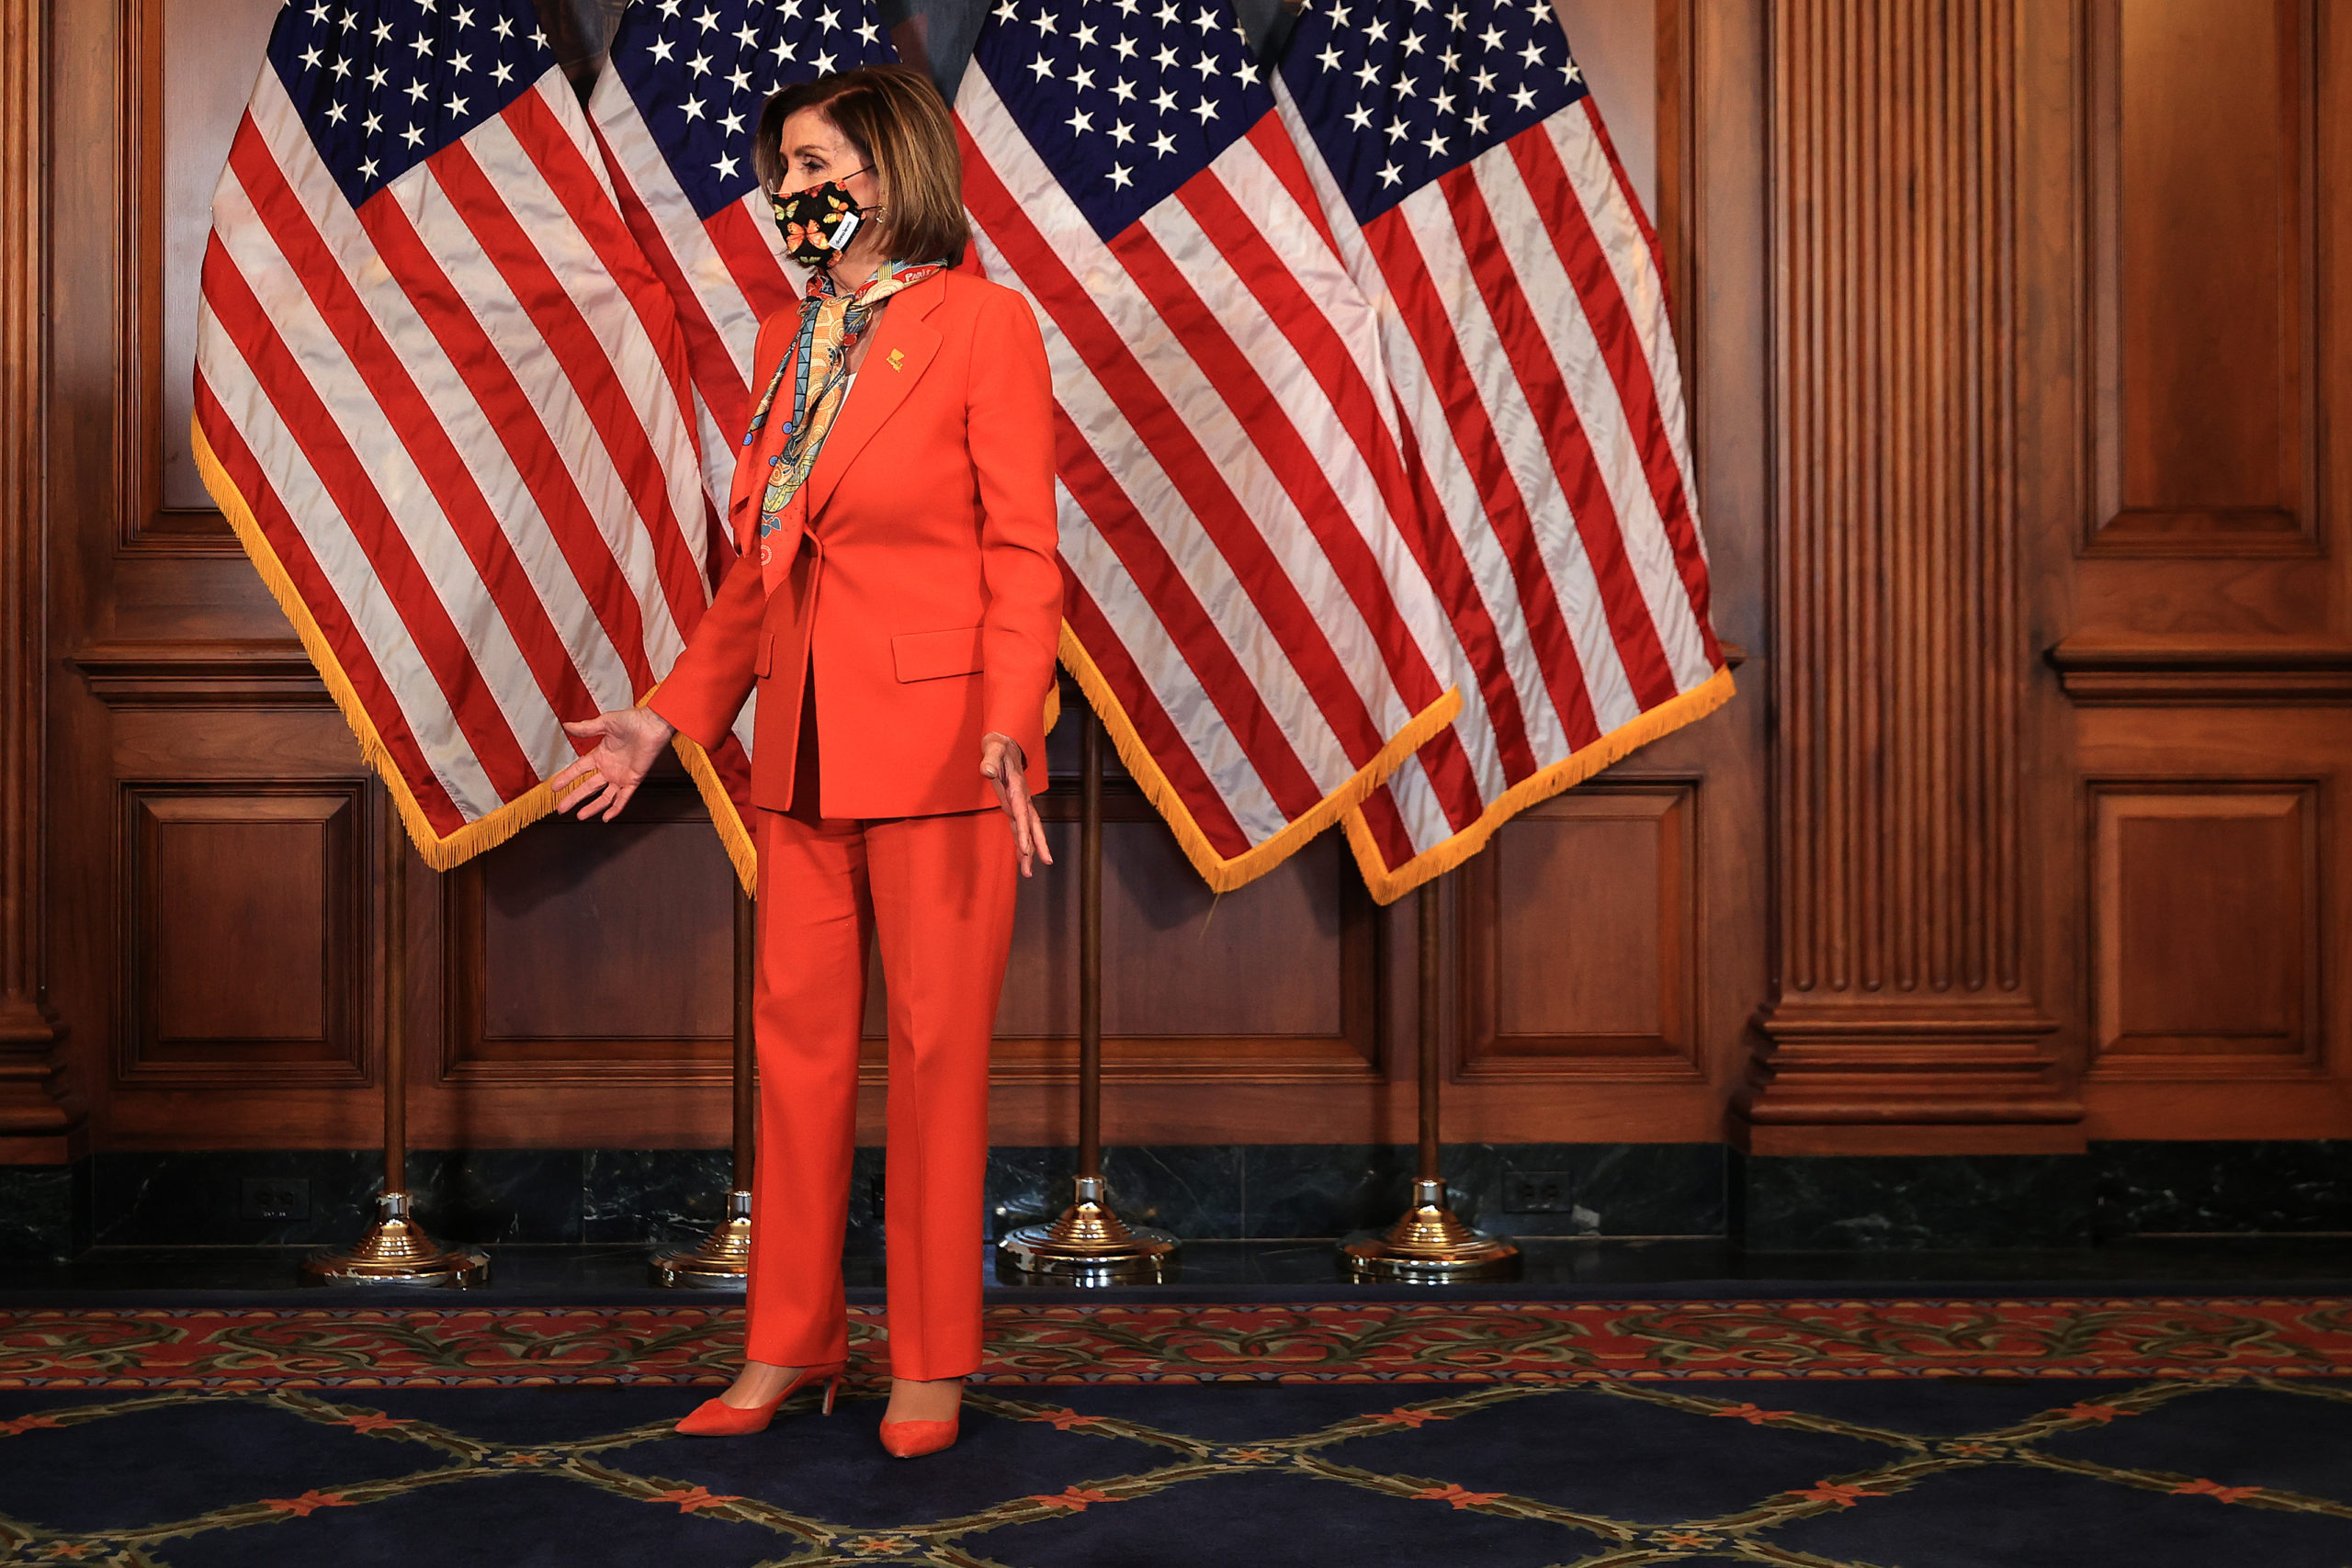 House Speaker Nancy Pelosi pictured at the U.S. Capitol on Tuesday. (Chip Somodevilla/Getty Images)